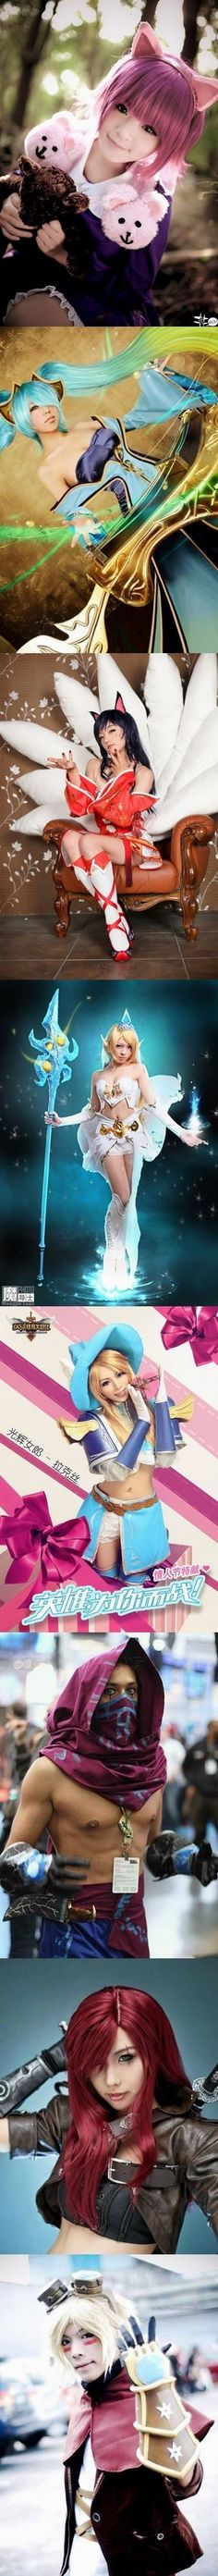 Cosplay level: League of Legends